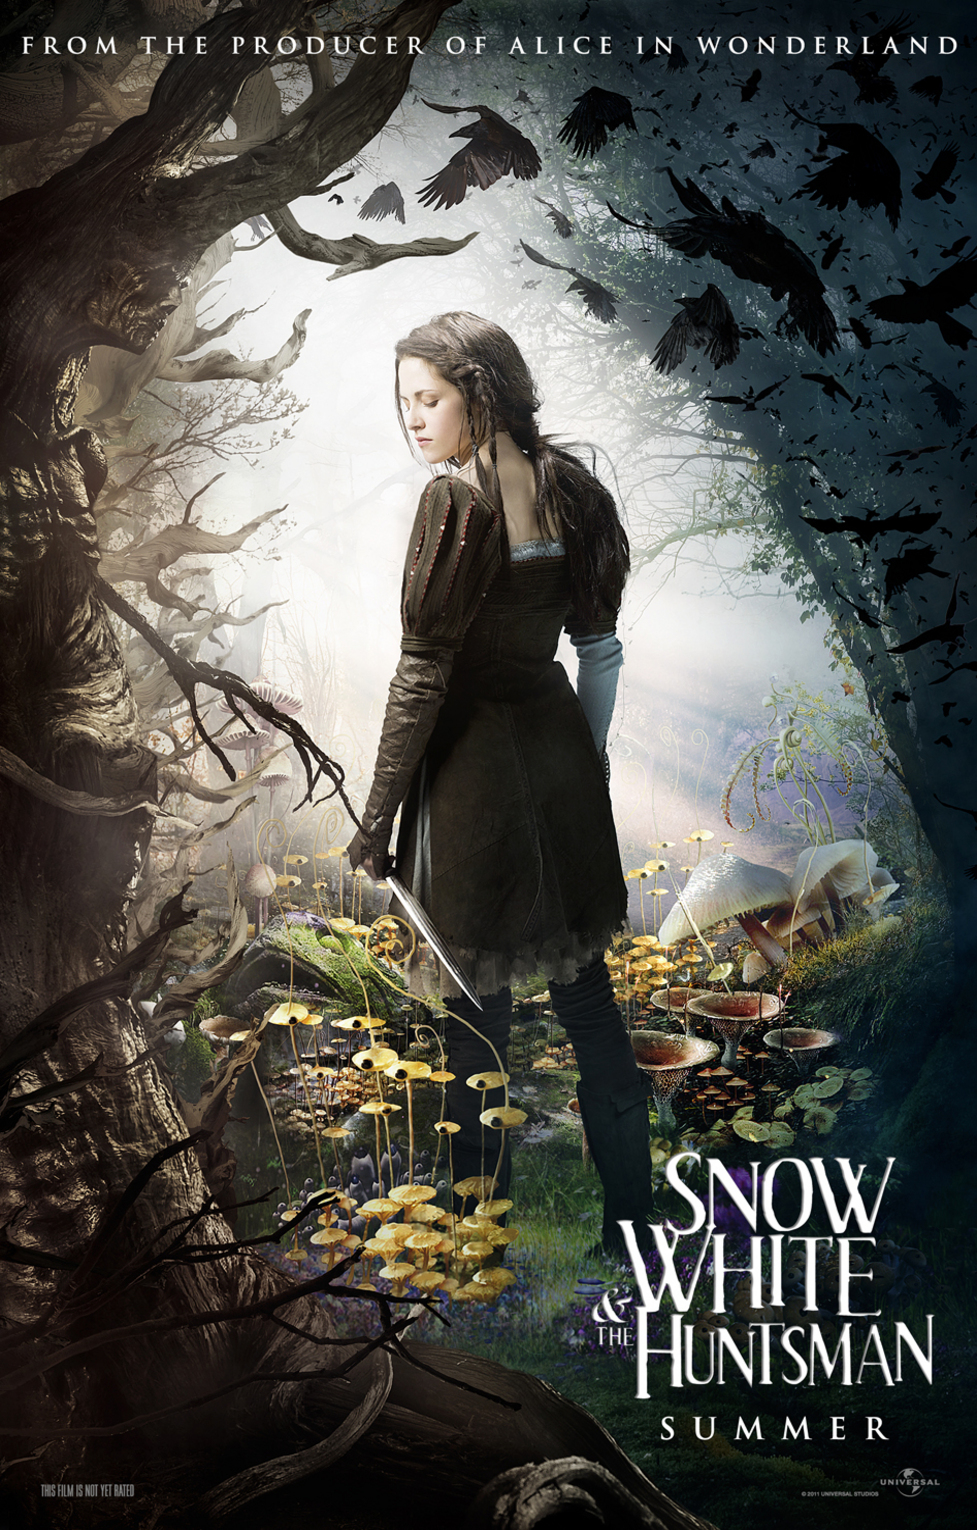 Snow White and the Huntsman - Movie Poster #2 (Original)